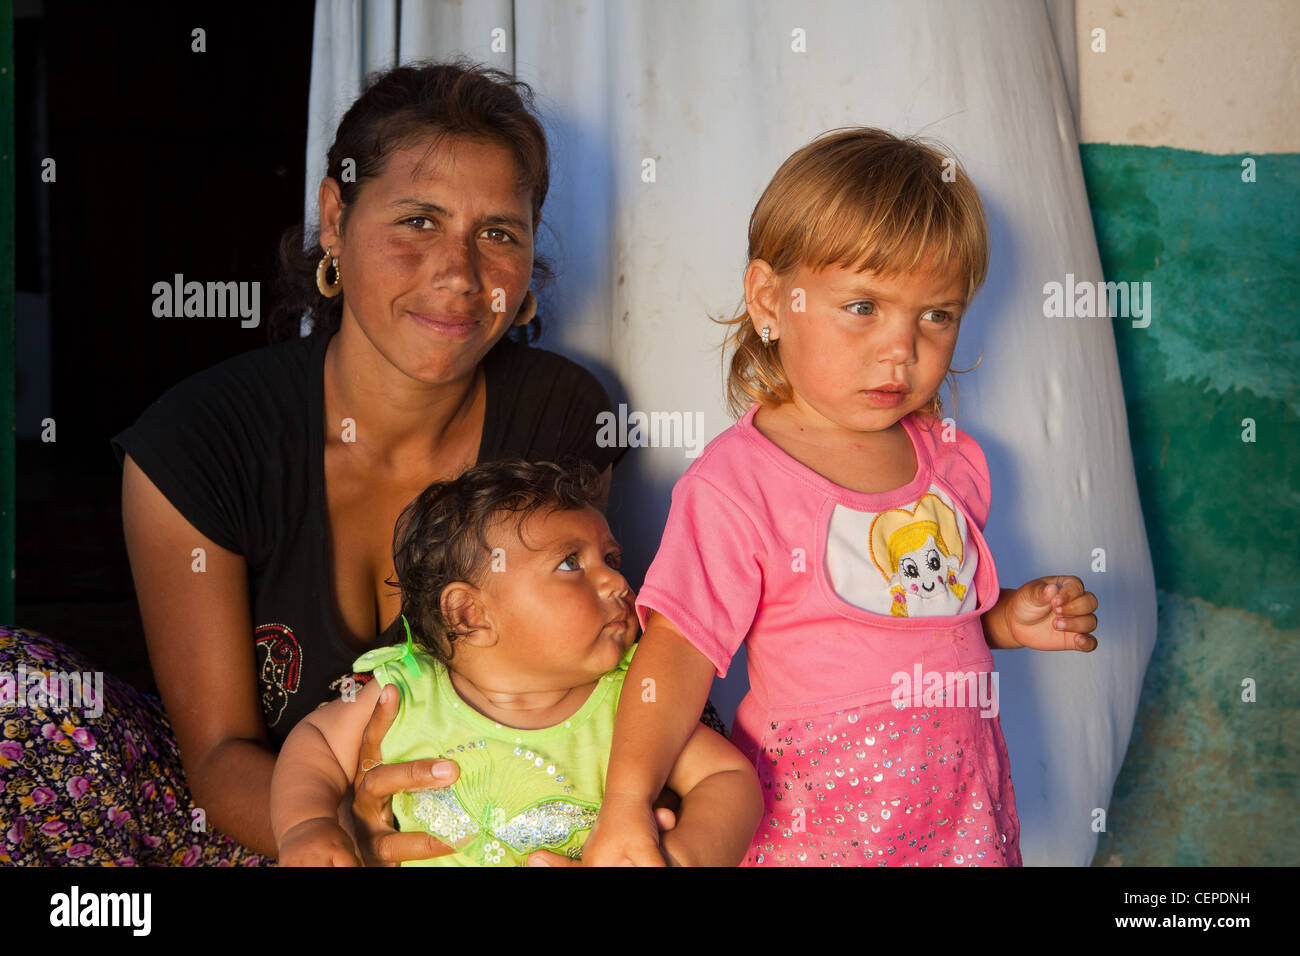 Roma gypsy mother with children in Bulgaria - Stock Image